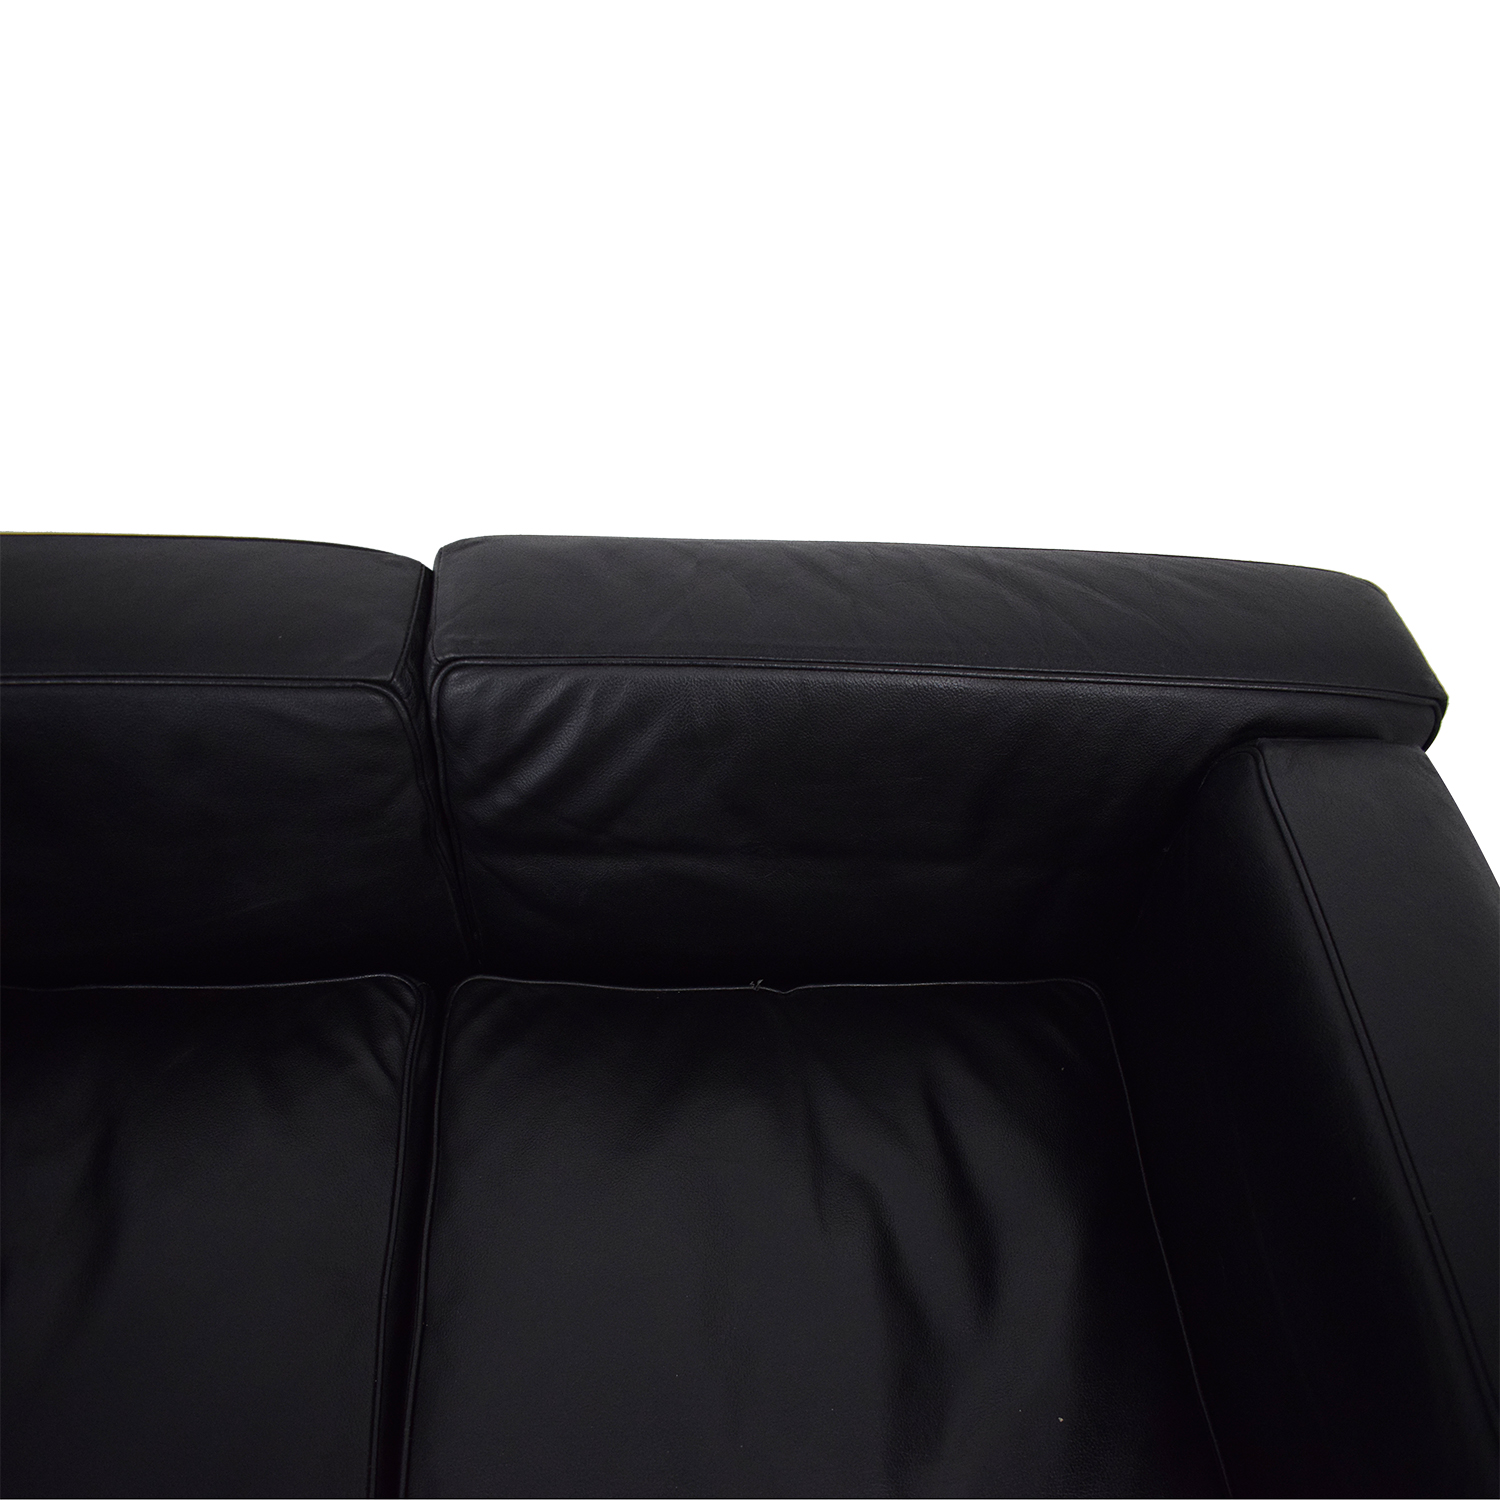 LC2-Inspired Two-Seat Sofa price